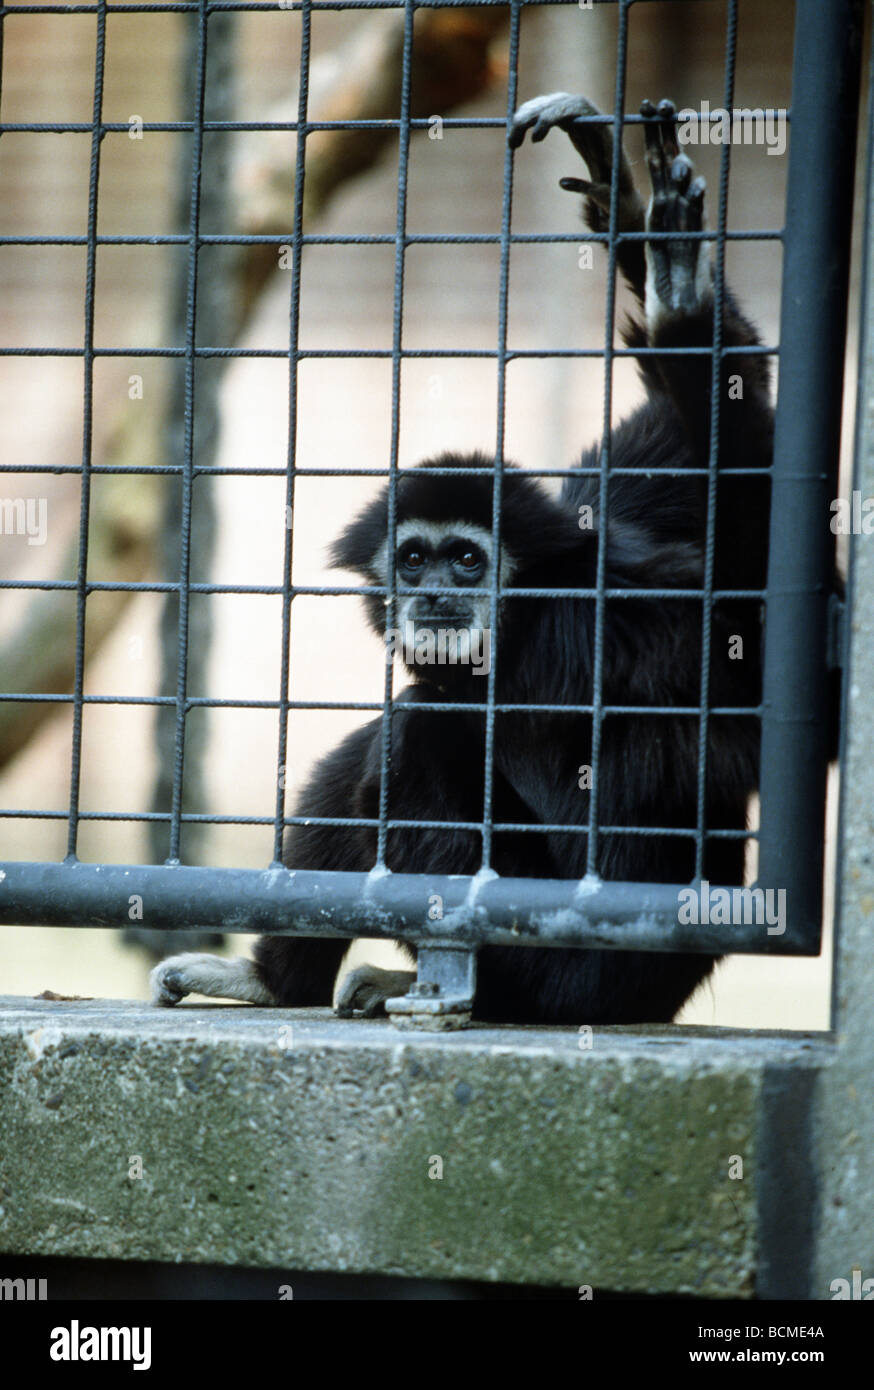 Ape behind bars in zoo - Stock Image